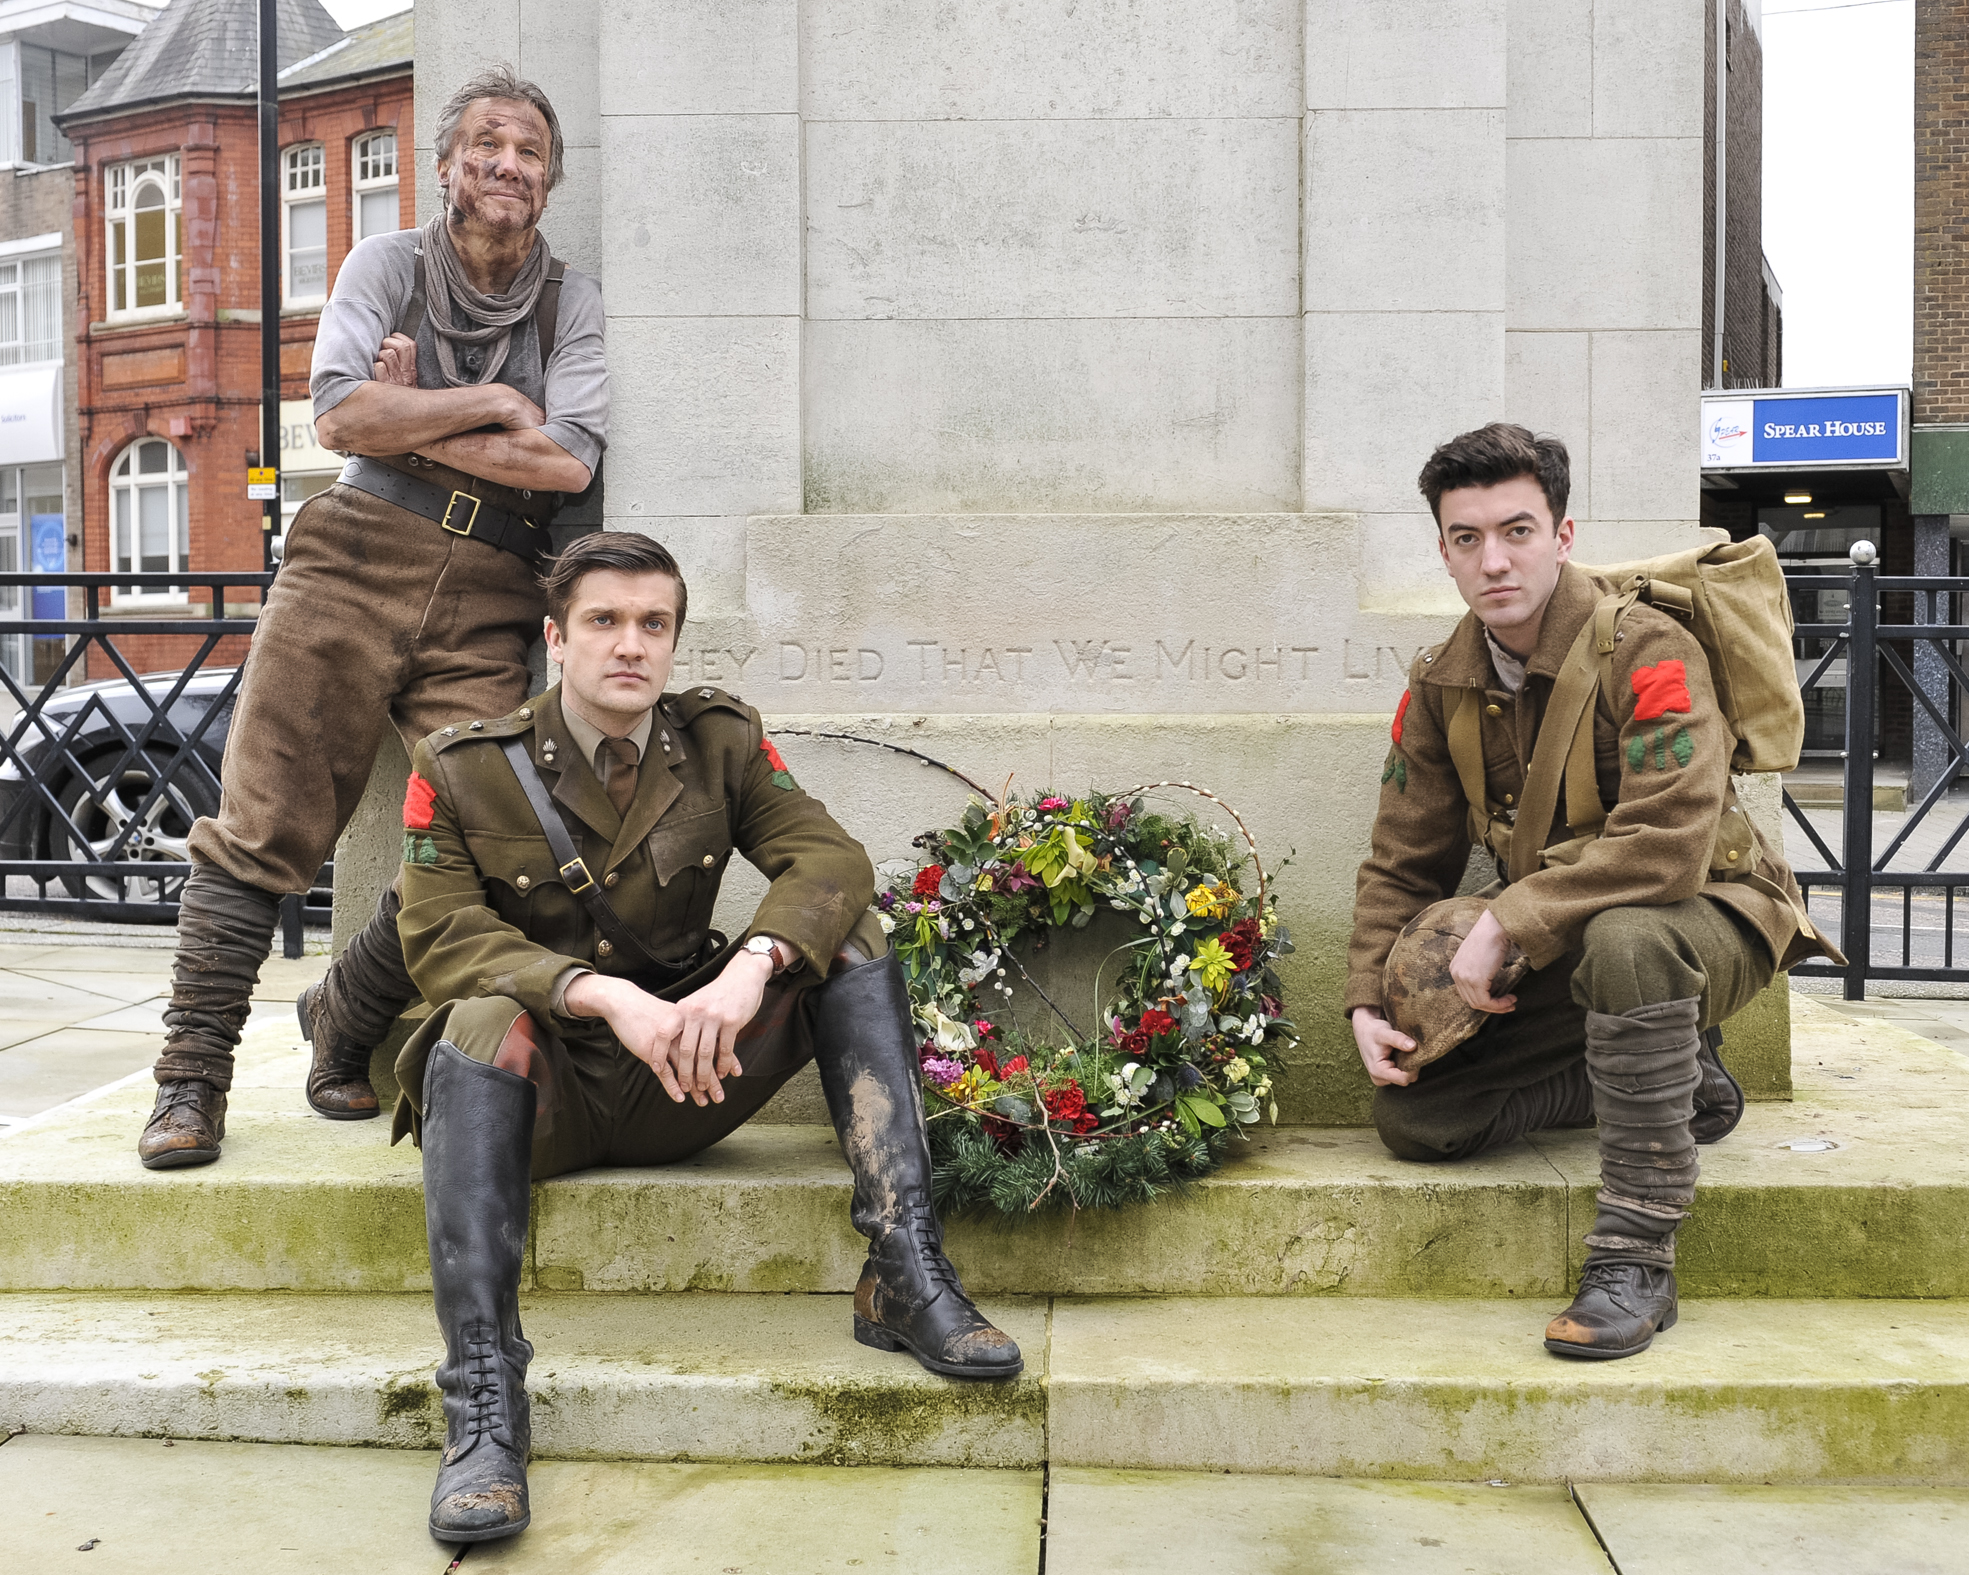 Cast members of Birdsong at Swindon Cenotaph. From left, Peter Duncan,